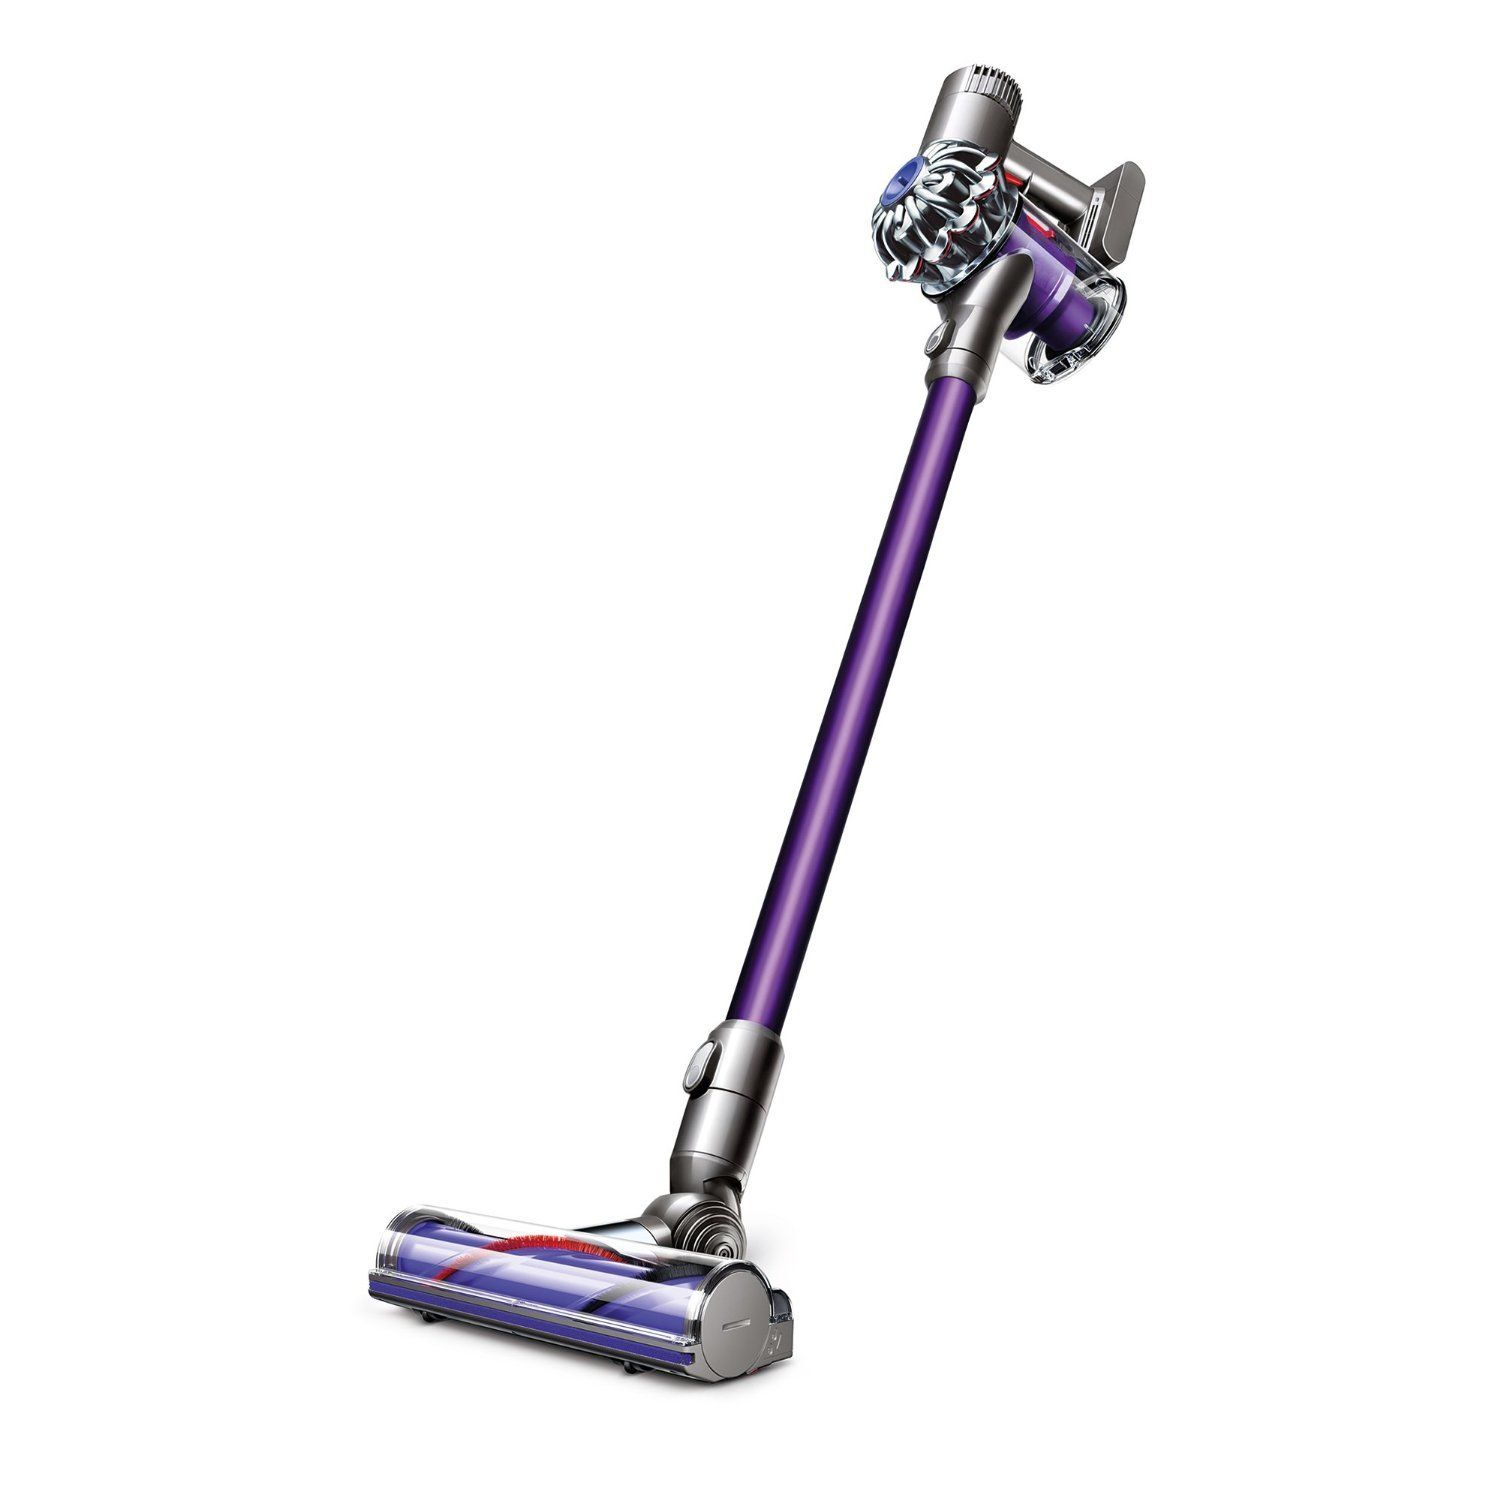 Dyson V6 Animal Cordless Vacuum Purple Renewed Canister Vacuums Central Vacuum Systems Handheld Vac In 2020 Cordless Vacuum Cleaner Handheld Vacuum Cleaner Dyson V6